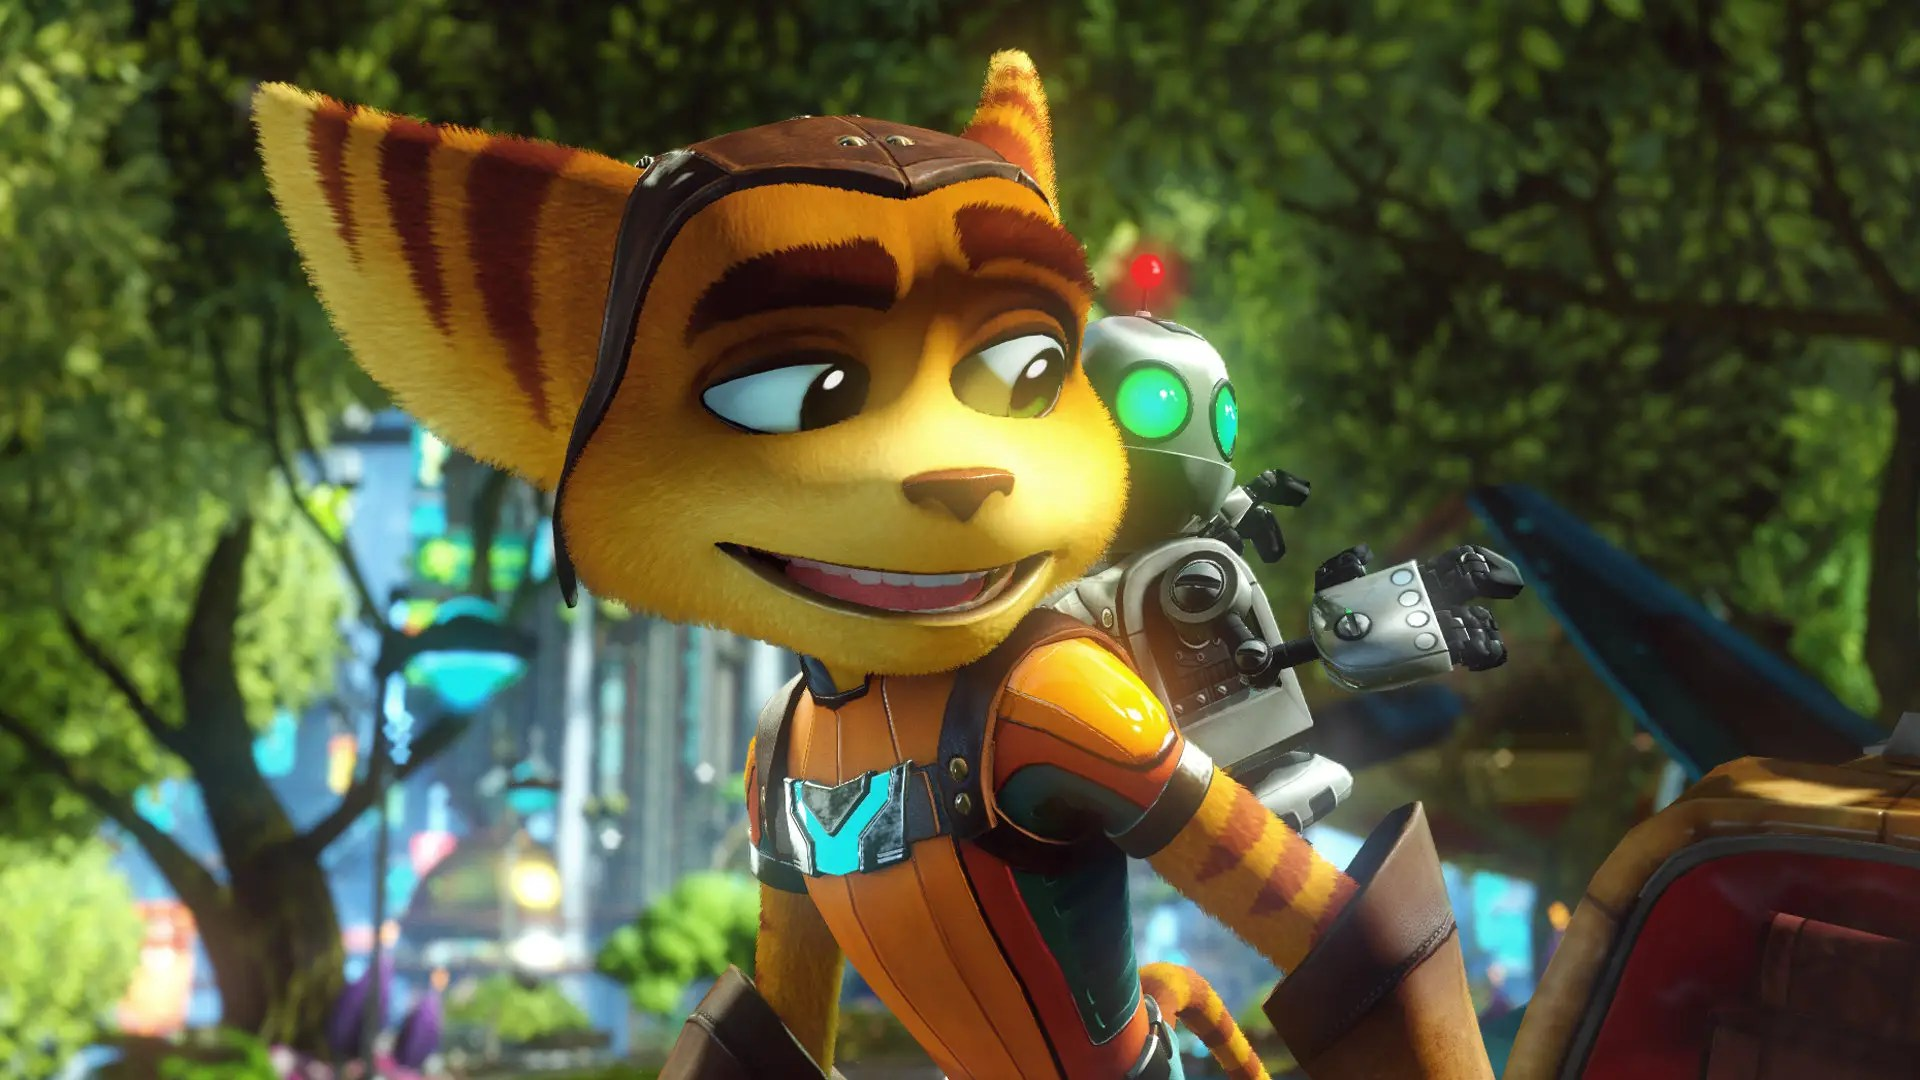 PS_Ratchet&Clank_1